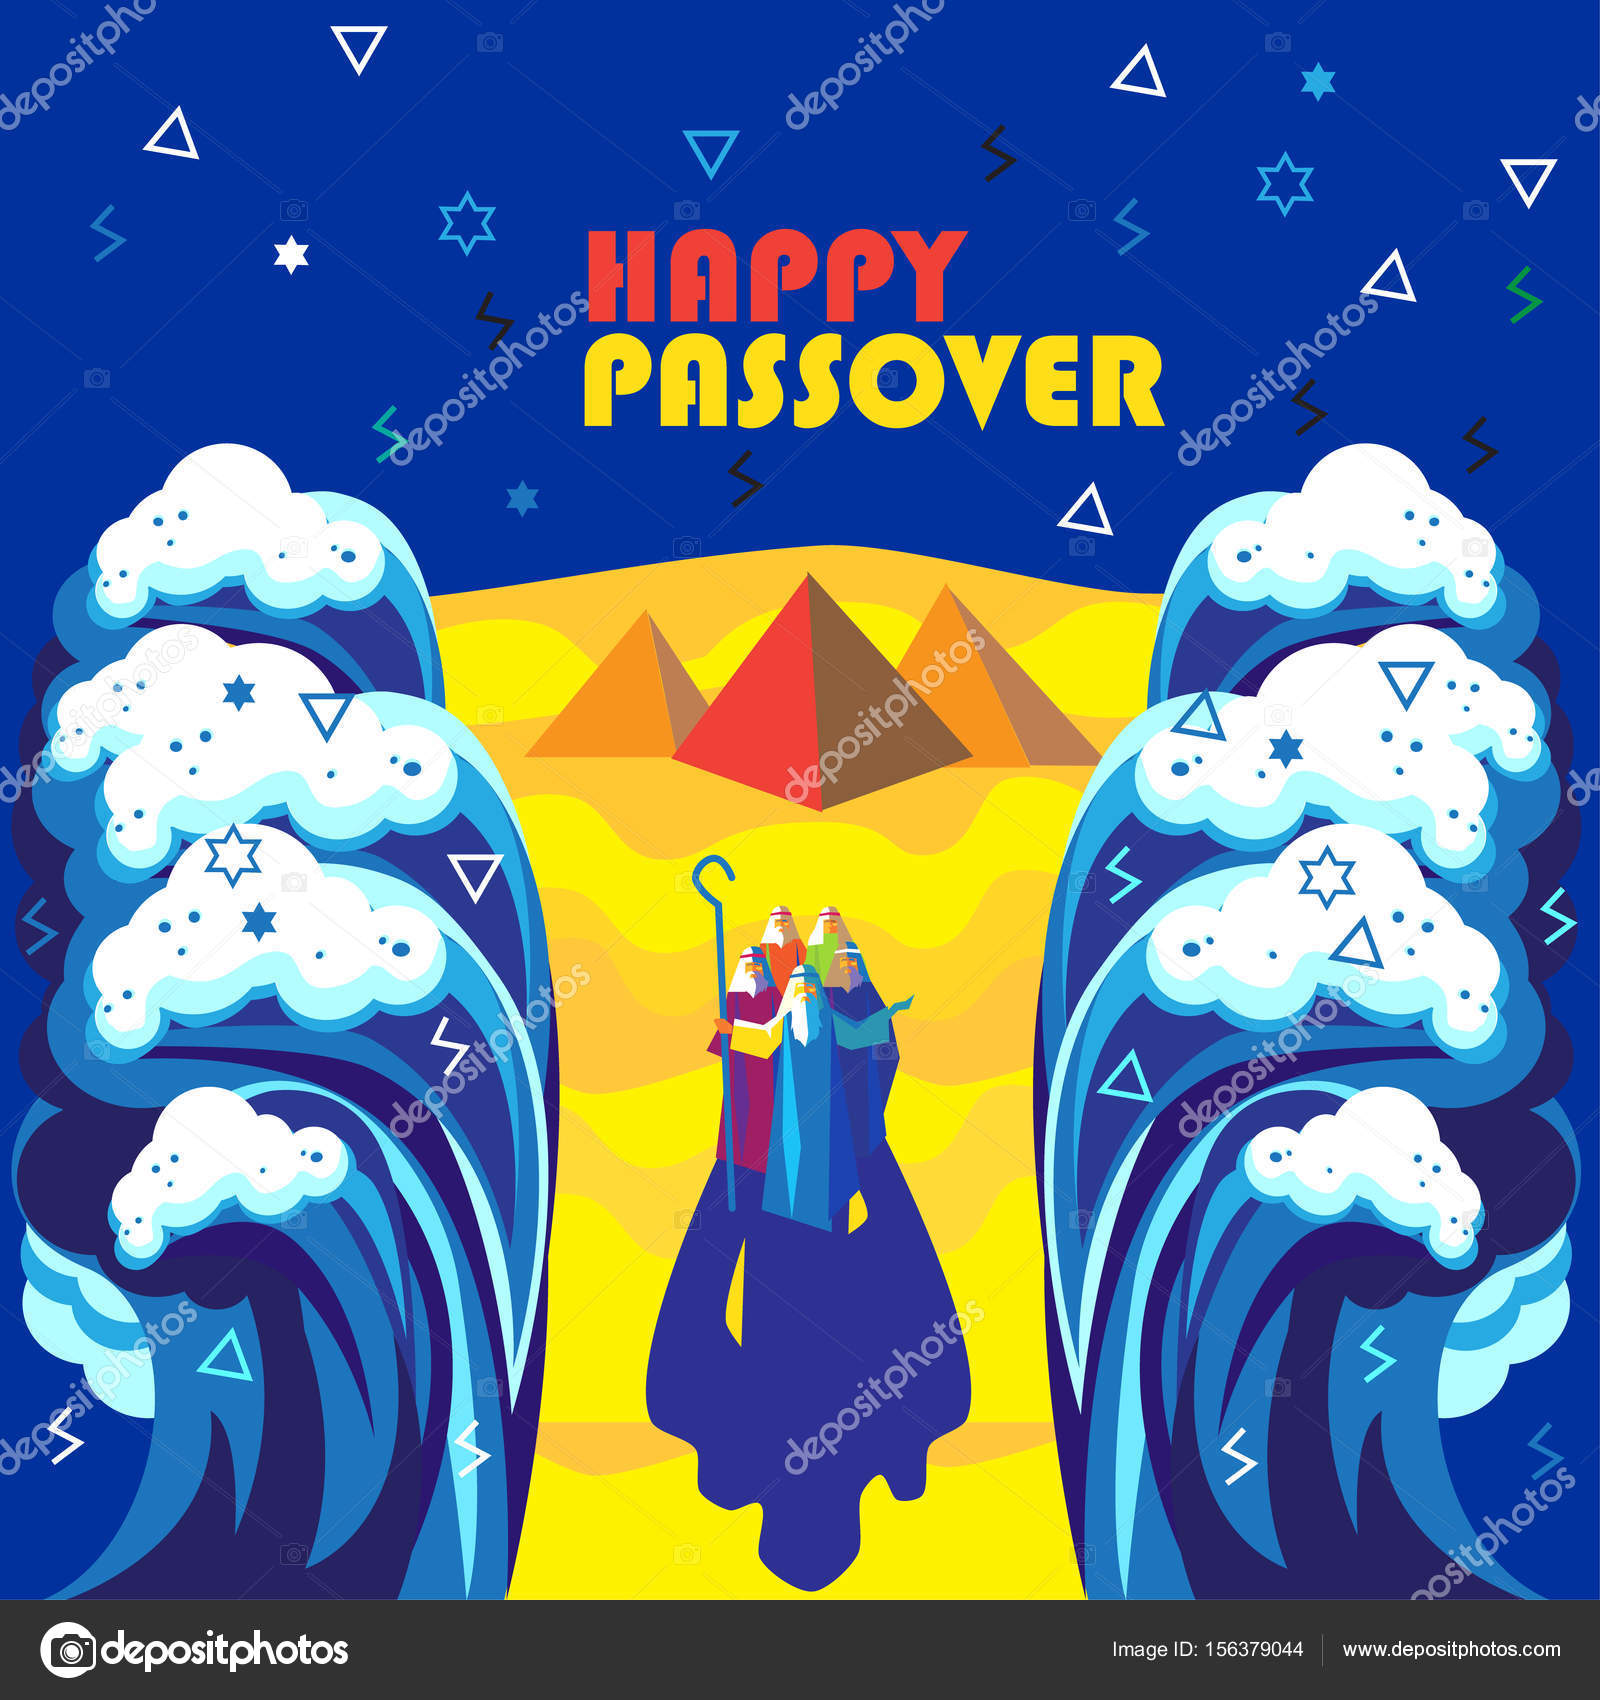 happy passover jewish holiday background, vector illustration with